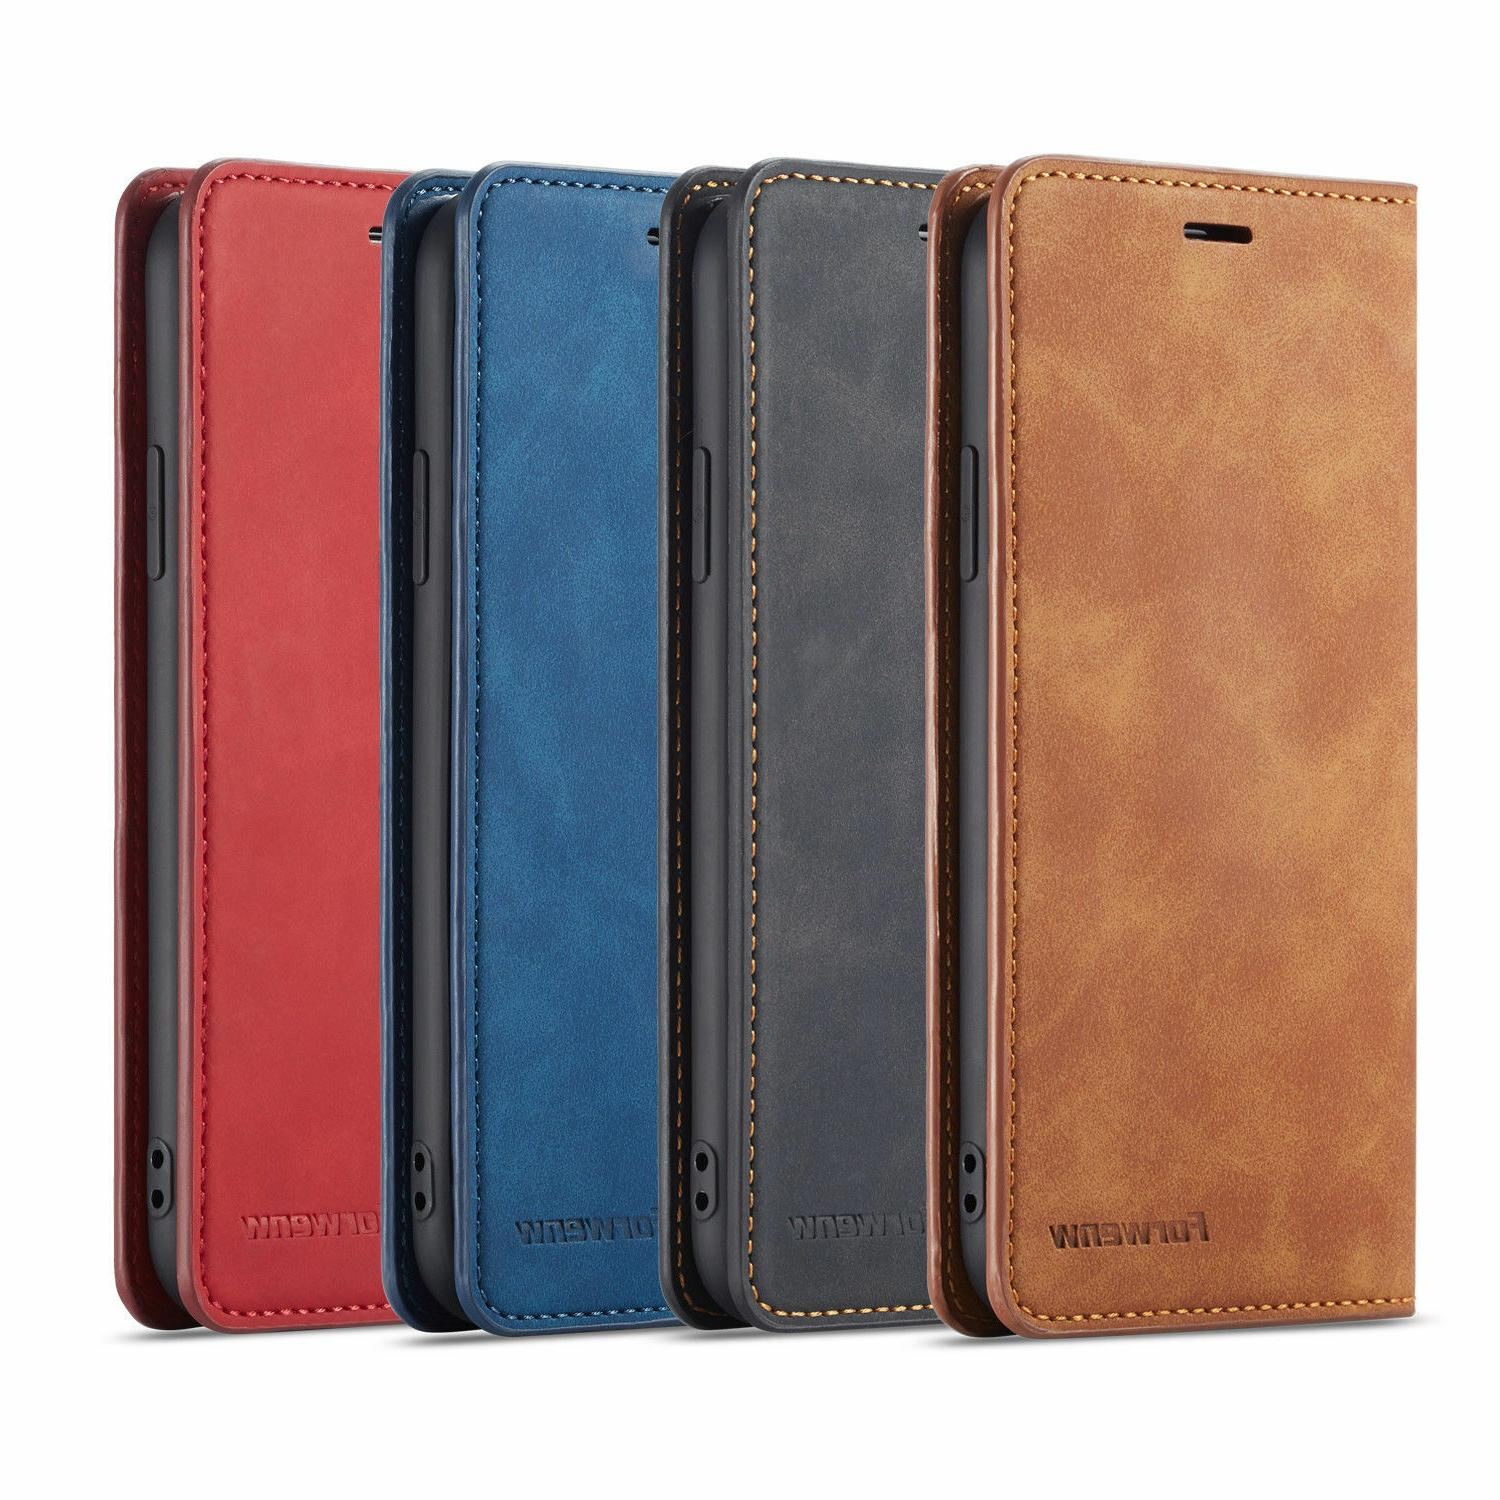 Leather Card Holder Case Cover For iPhone 7 Plus 11 Pro